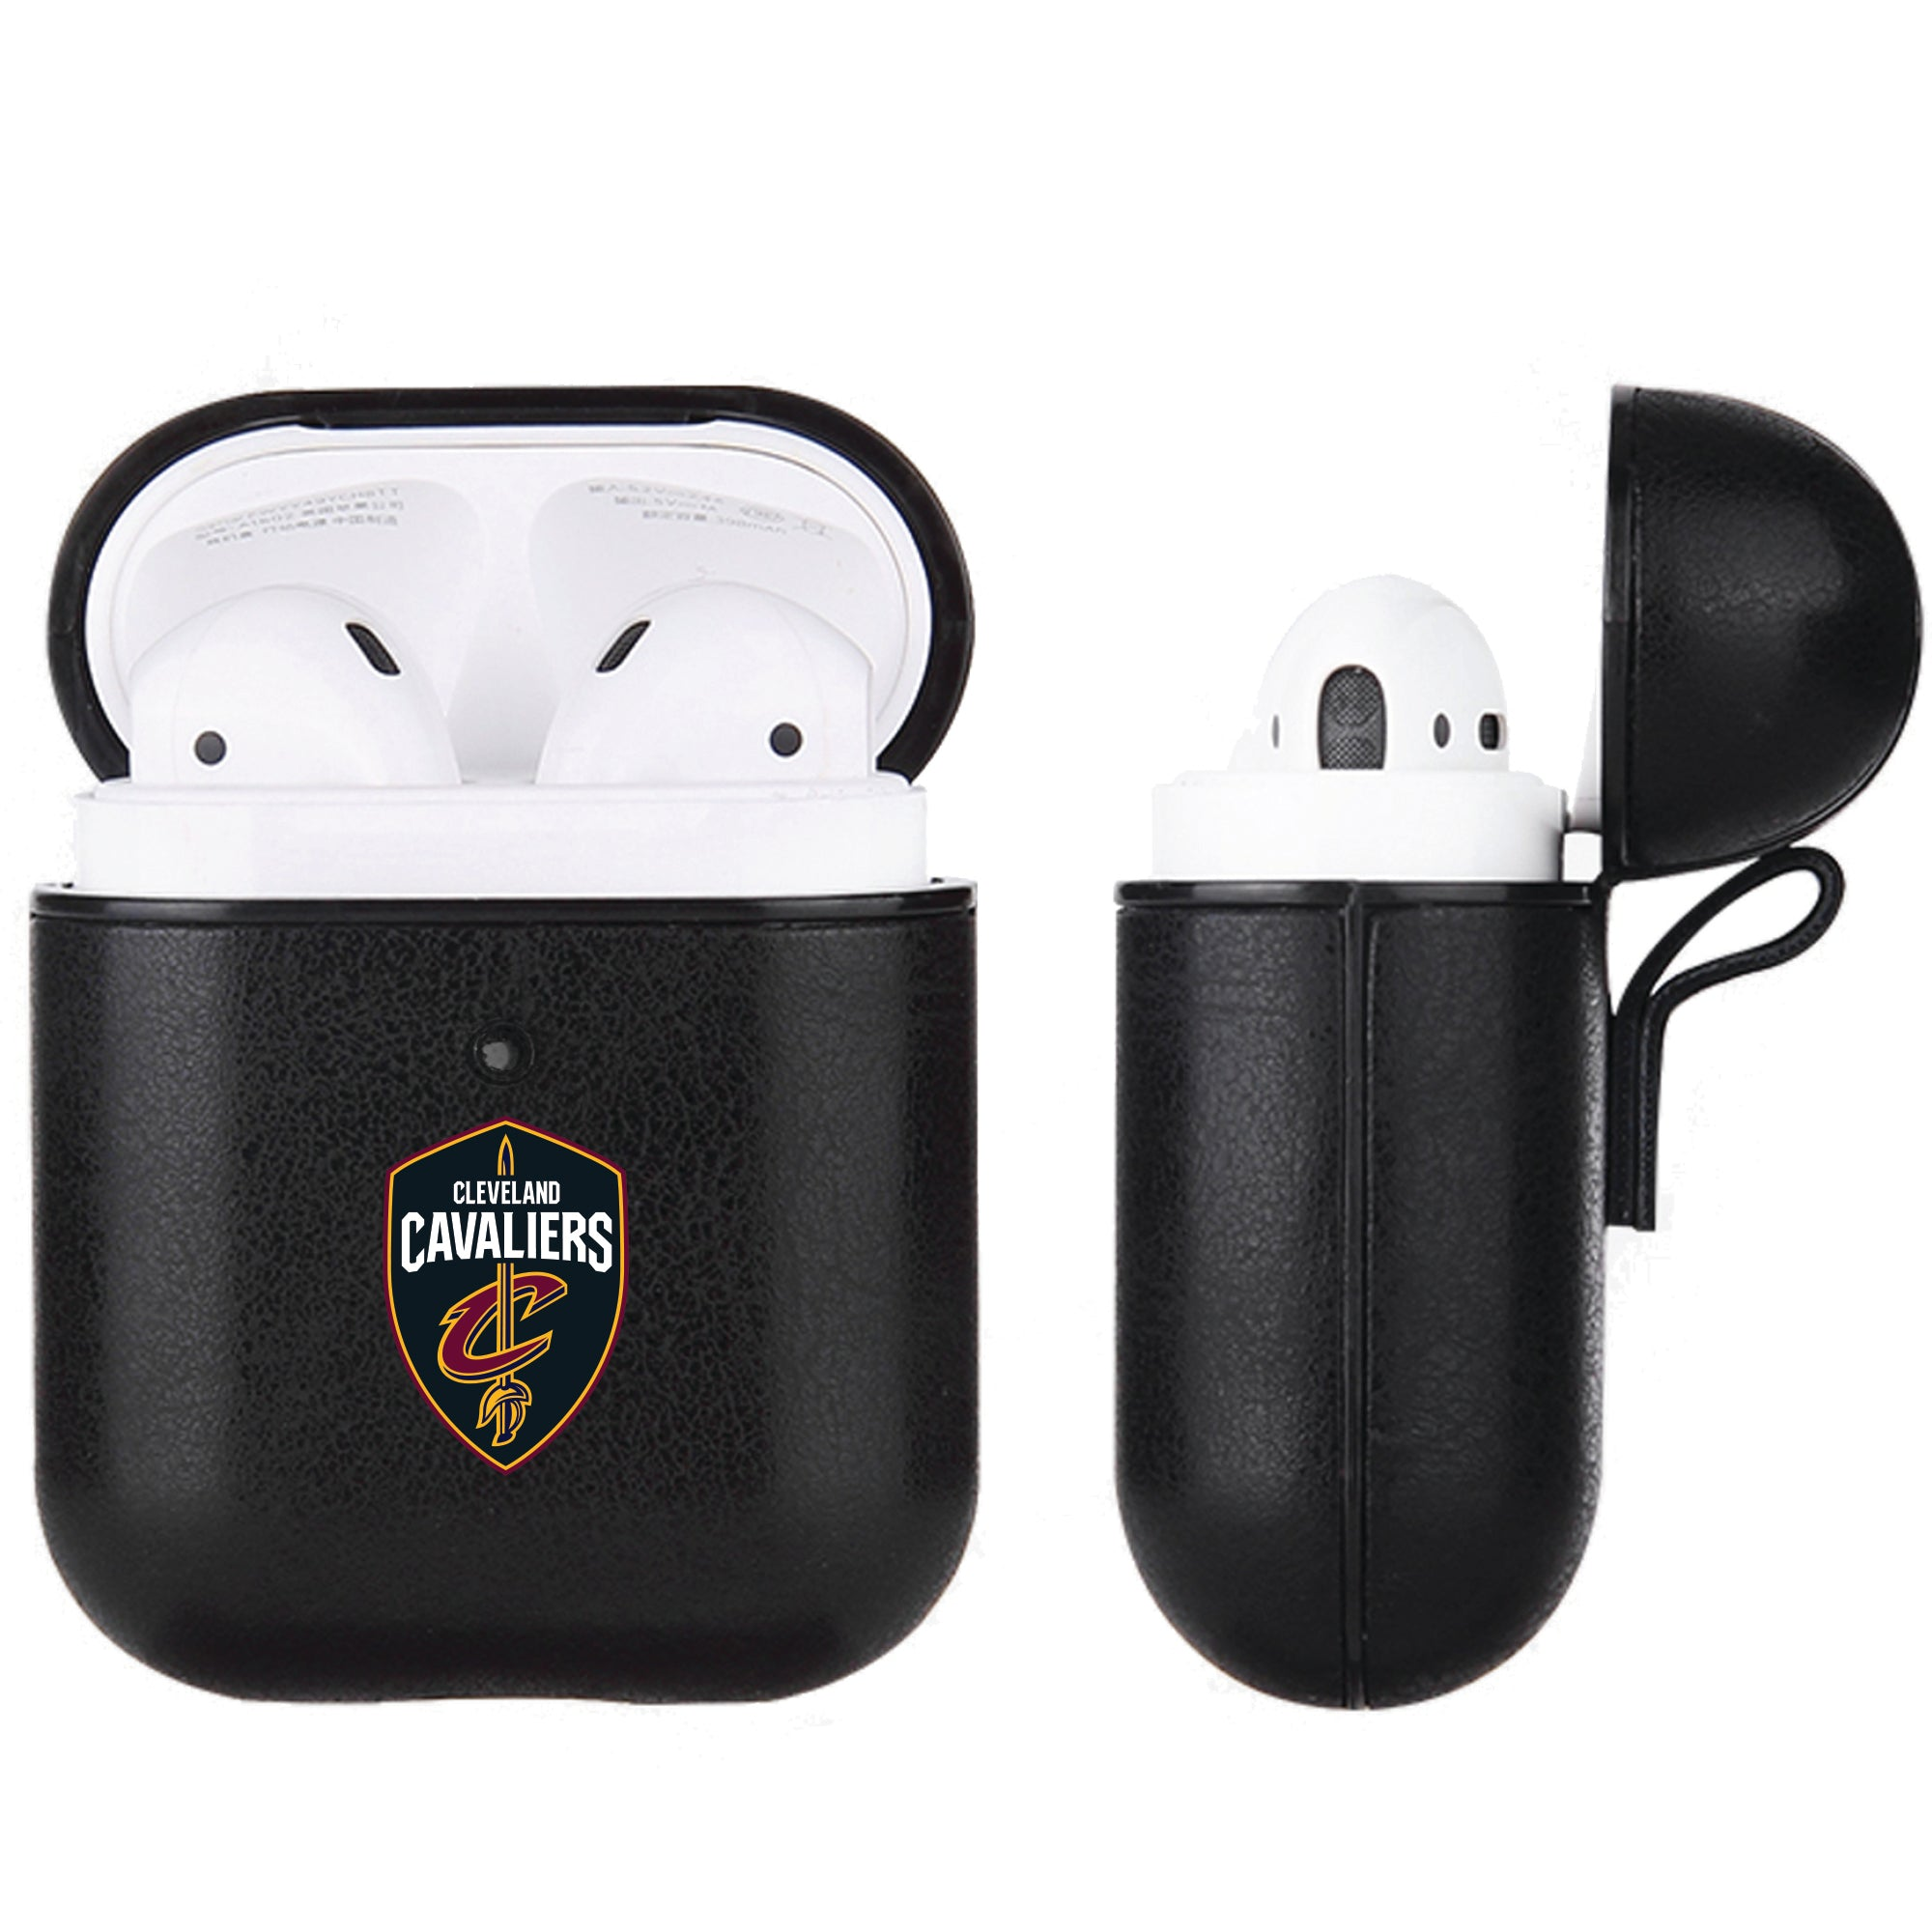 Cleveland Cavaliers Black Apple Air Pod Leather Case